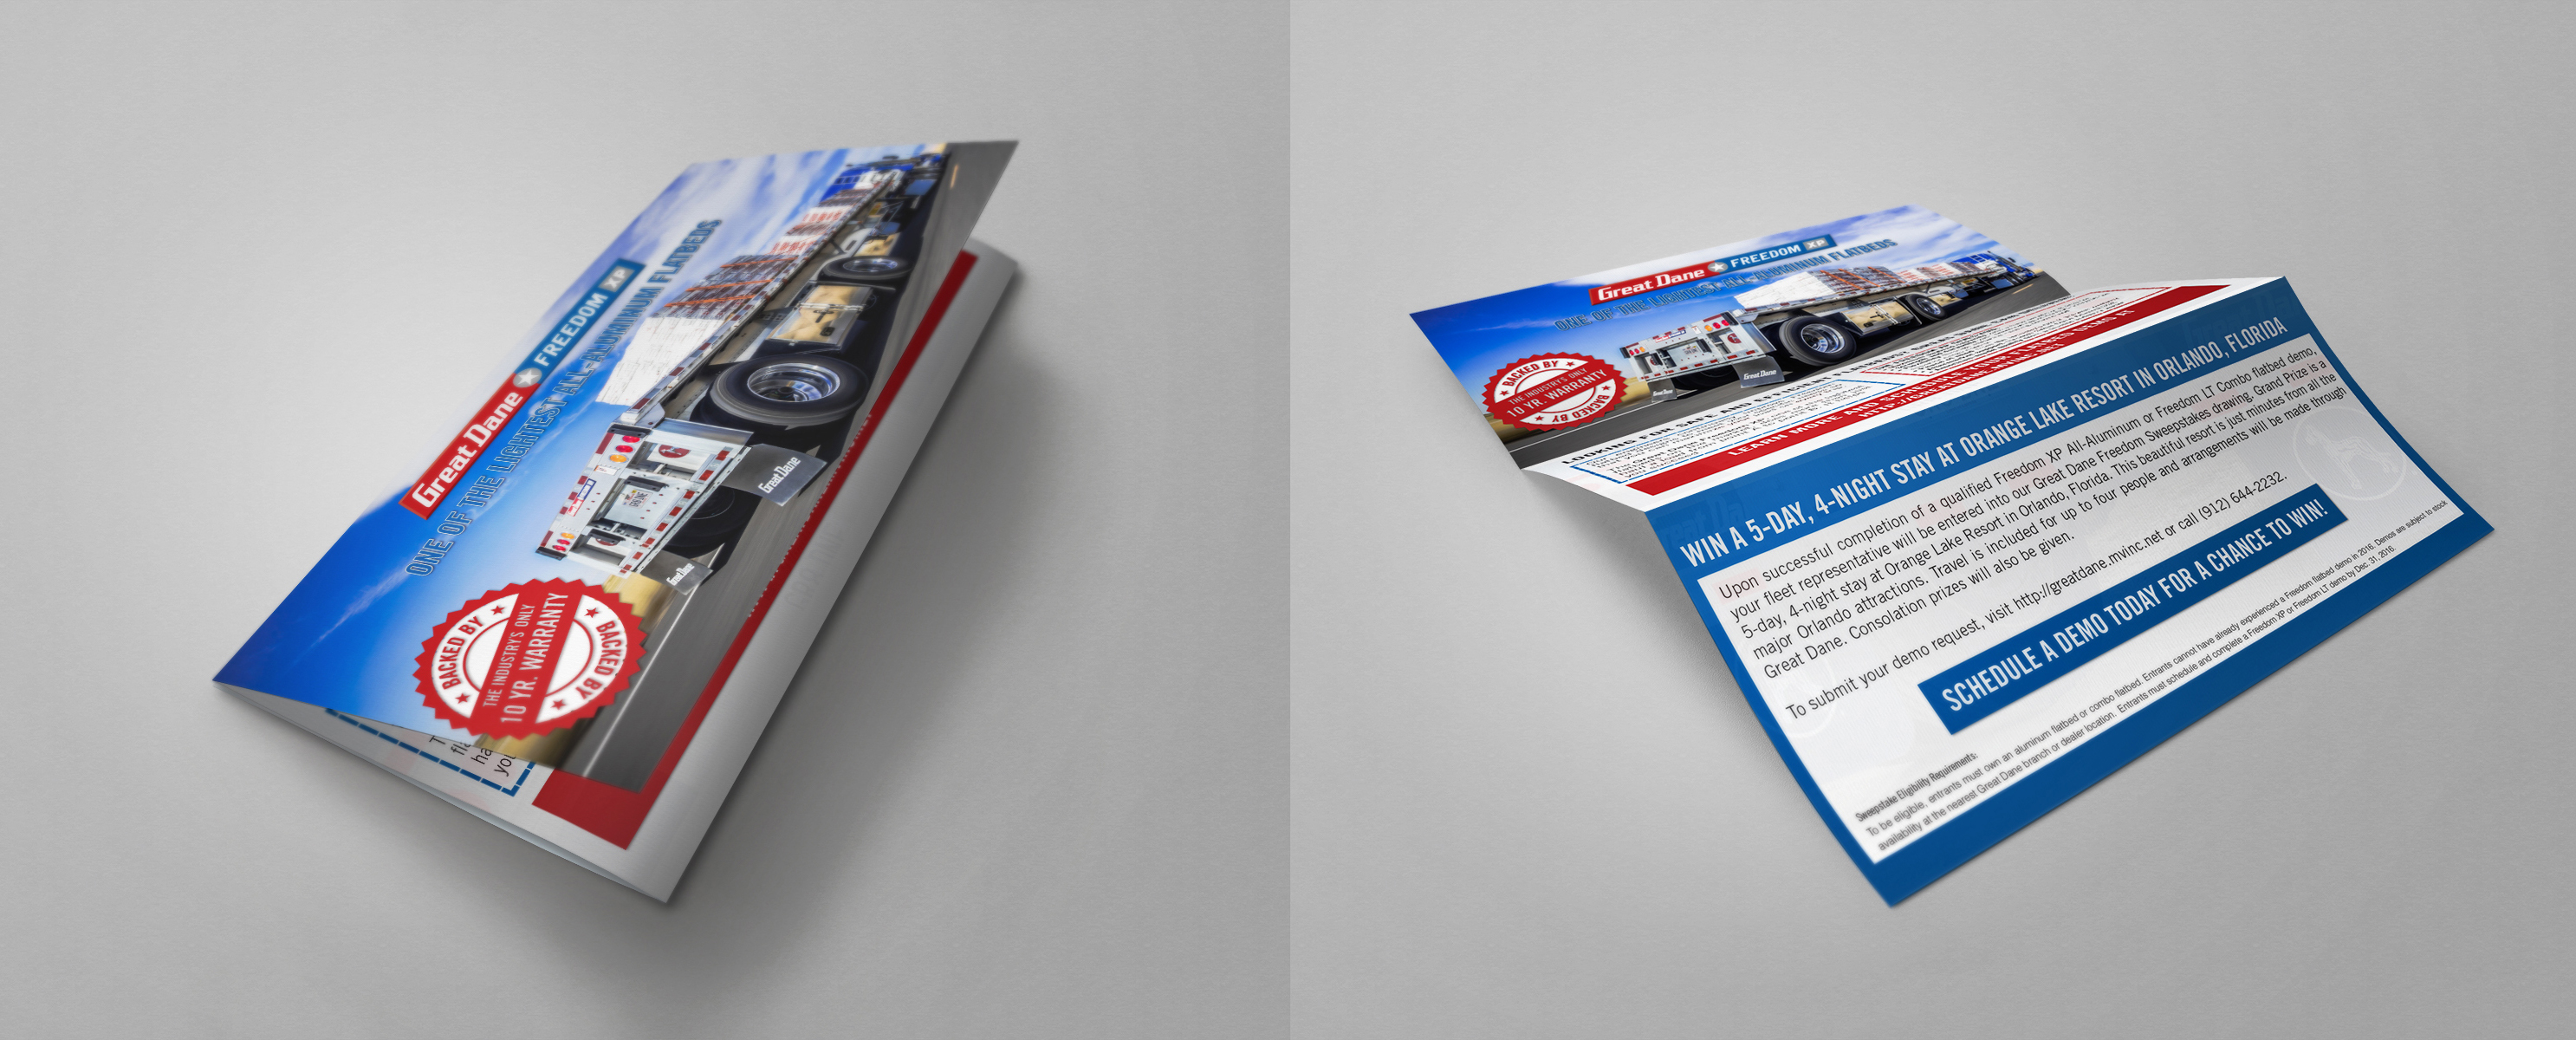 """Print design needs to """"shock and awe"""" the intended audience to keep up with an ever evolving digital environment"""